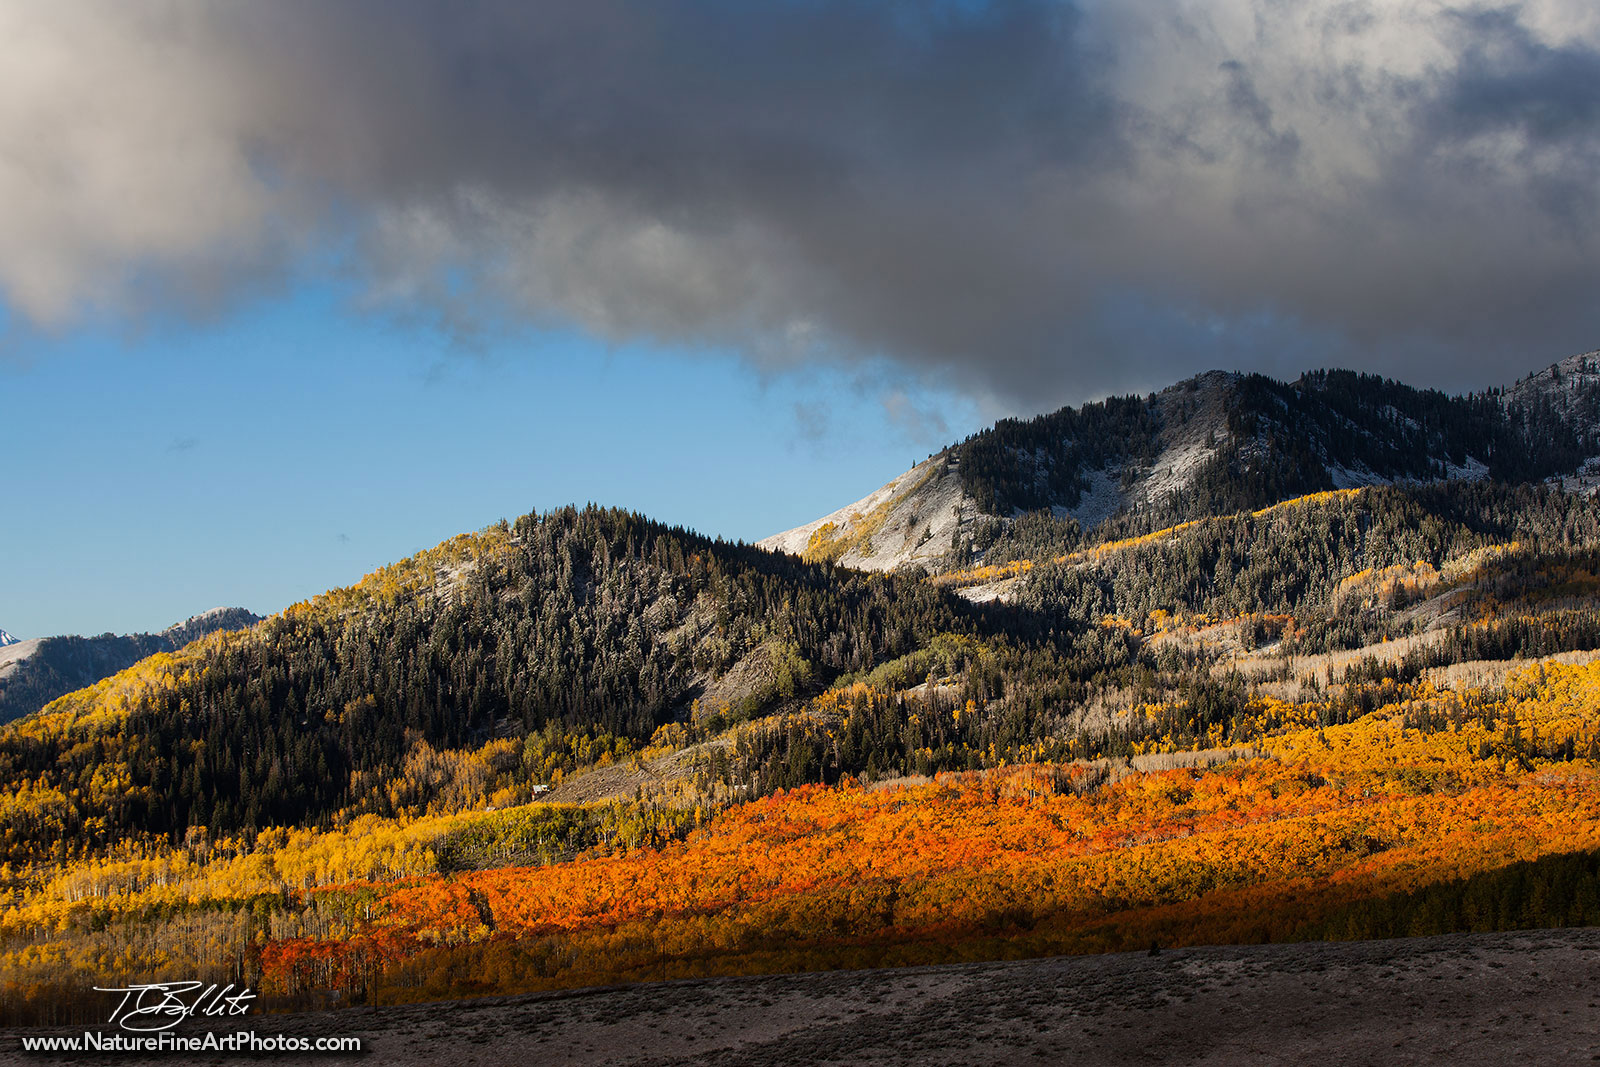 Utah Fall Foliage Photo